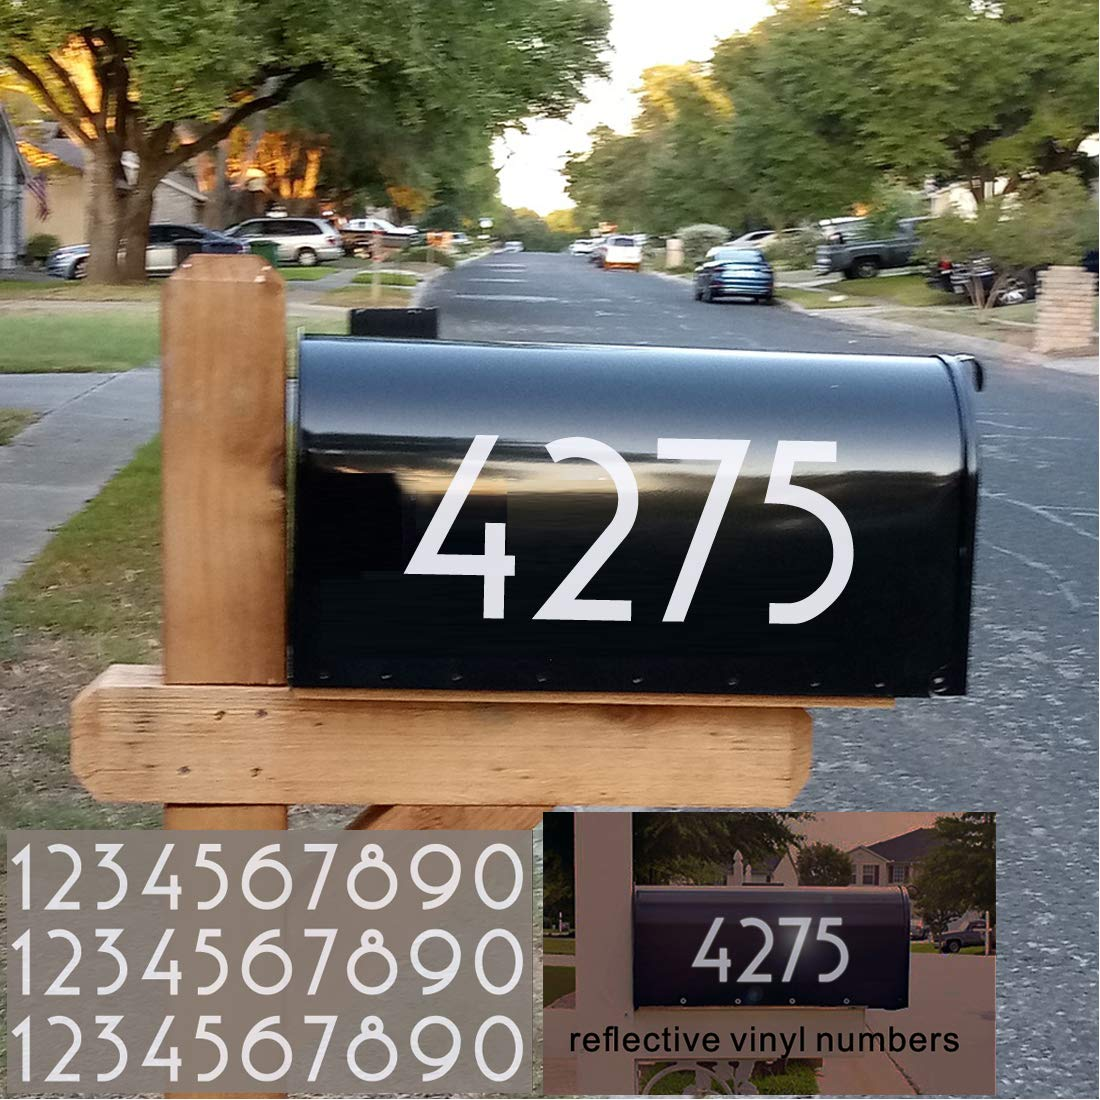 Diggoo Reflective Mailbox Numbers Sticker Decal Die Cut Uzbek Style Vinyl Number 4 Self Adhesive 2 Sets for Mailbox Signs Cars Trucks Door Window Home Address Number Business